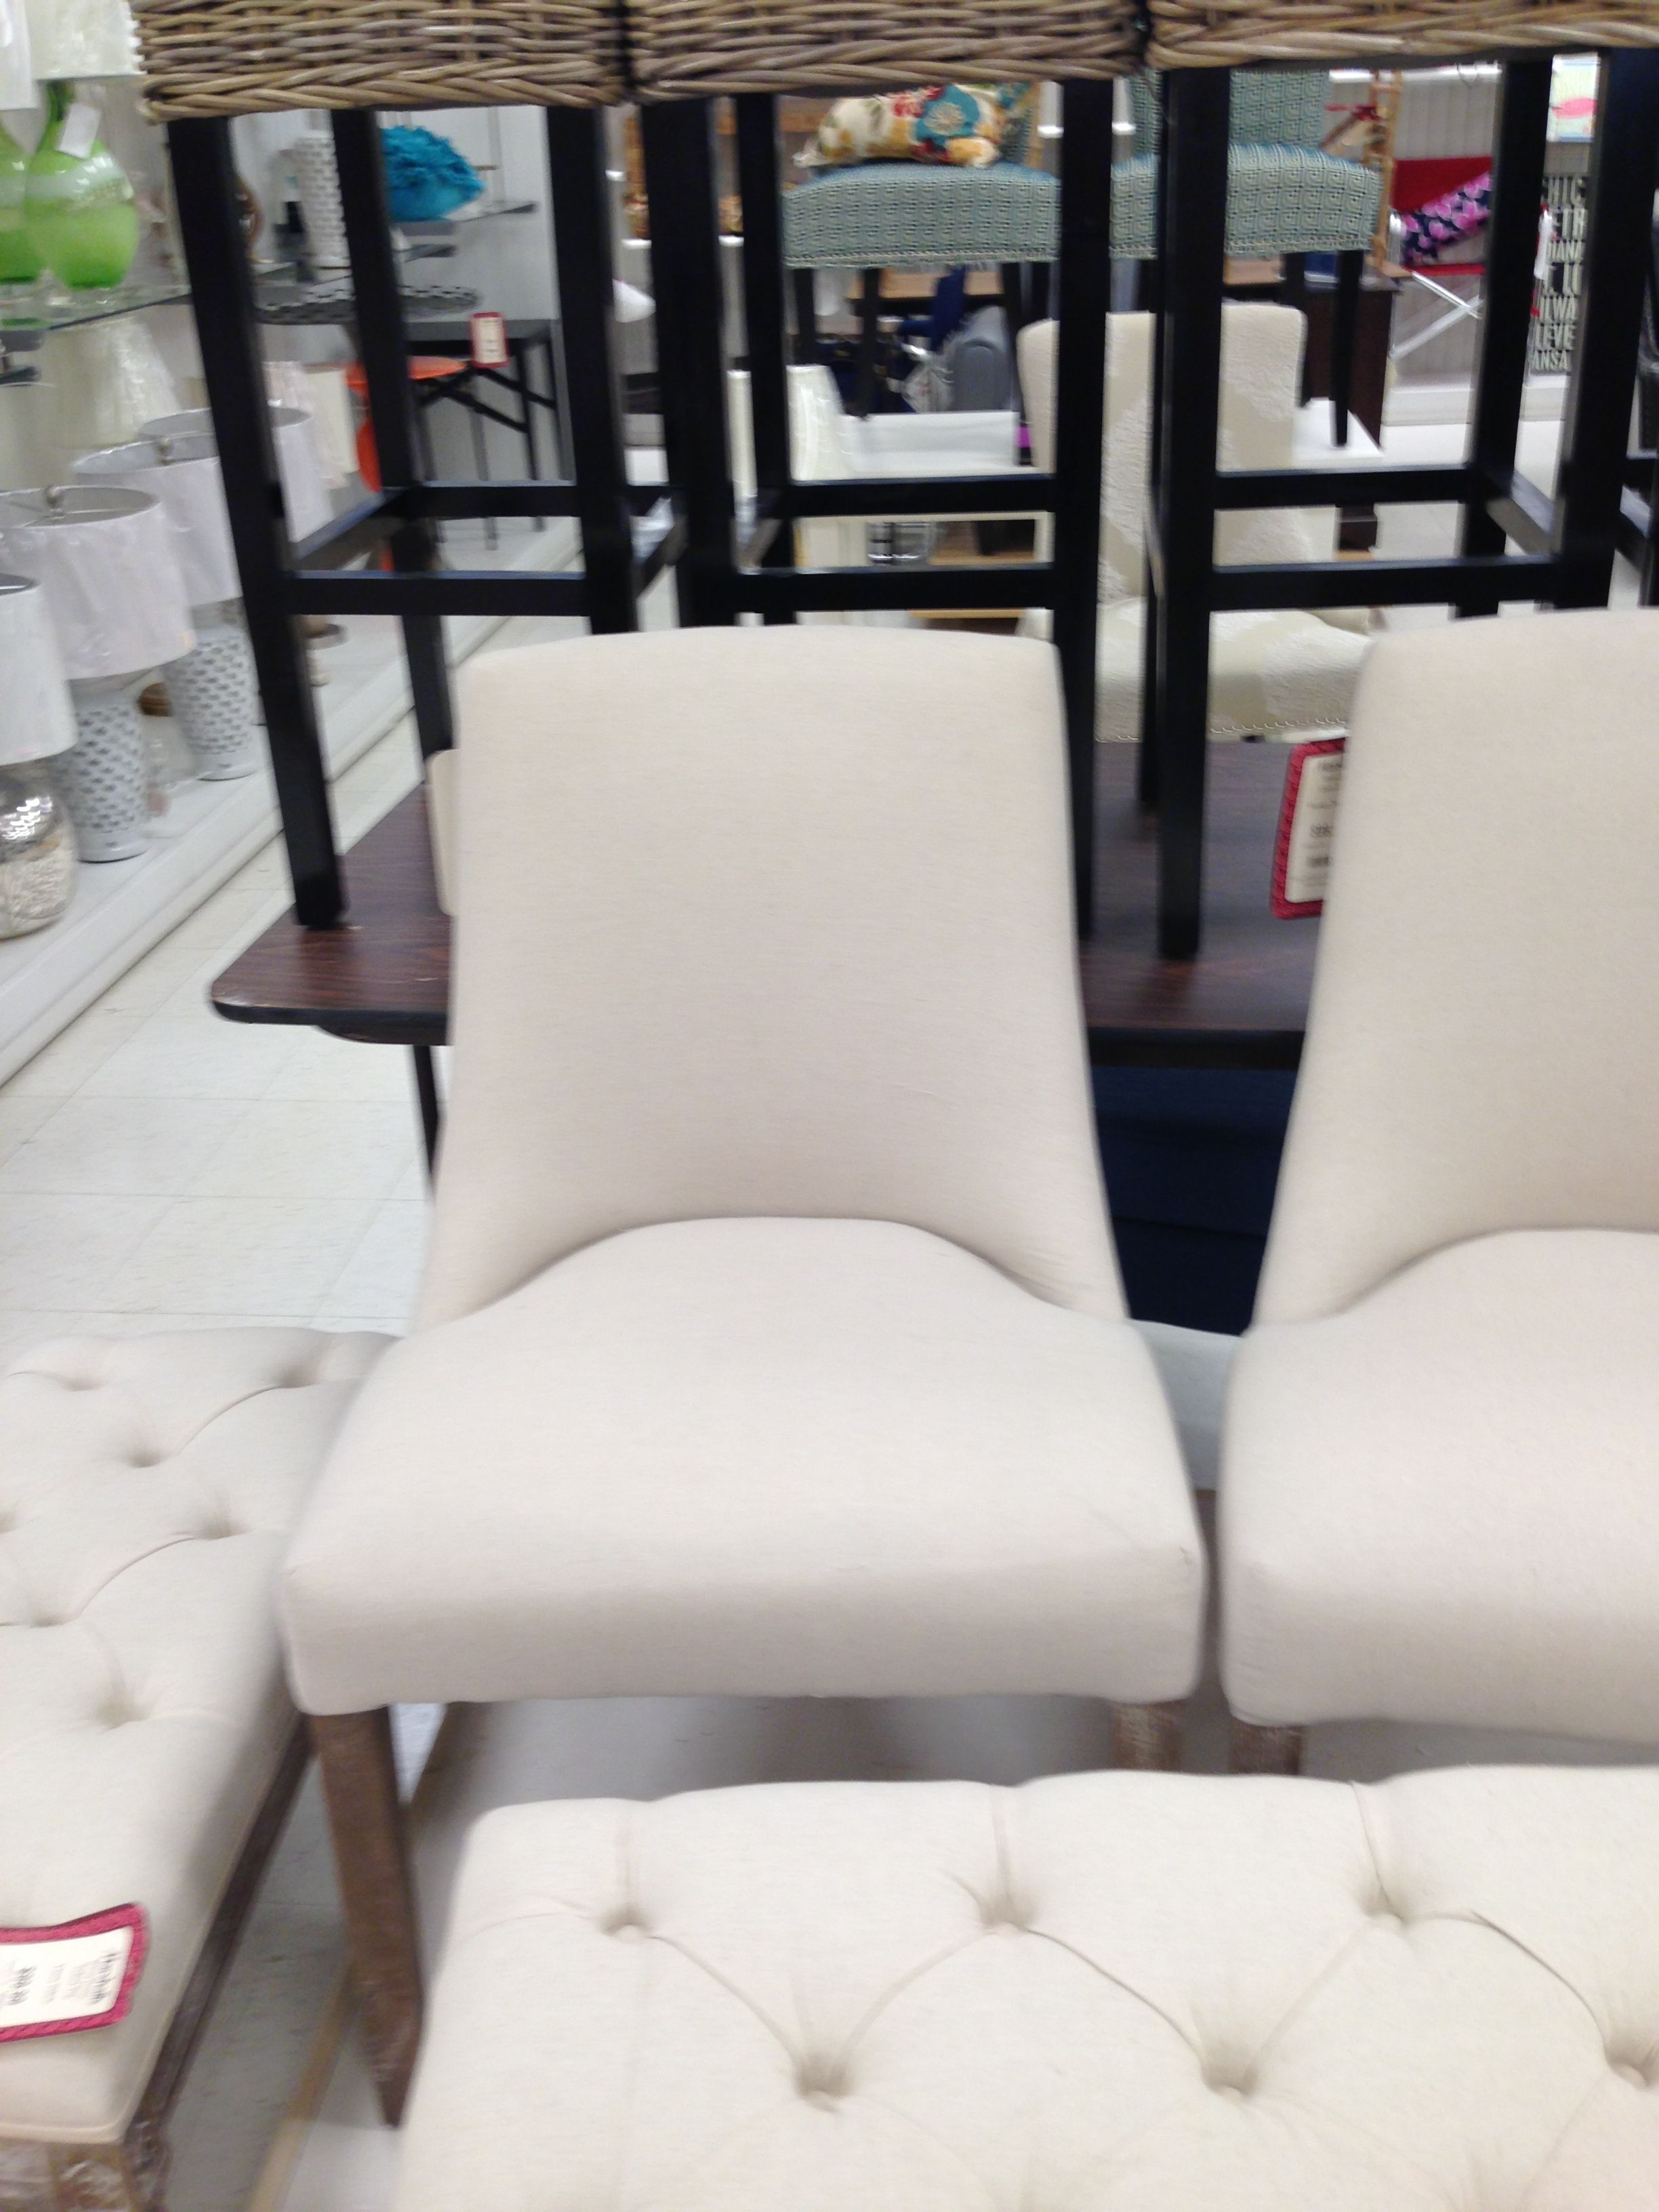 Some of My Favorite Things to Shop For at HomeGoods